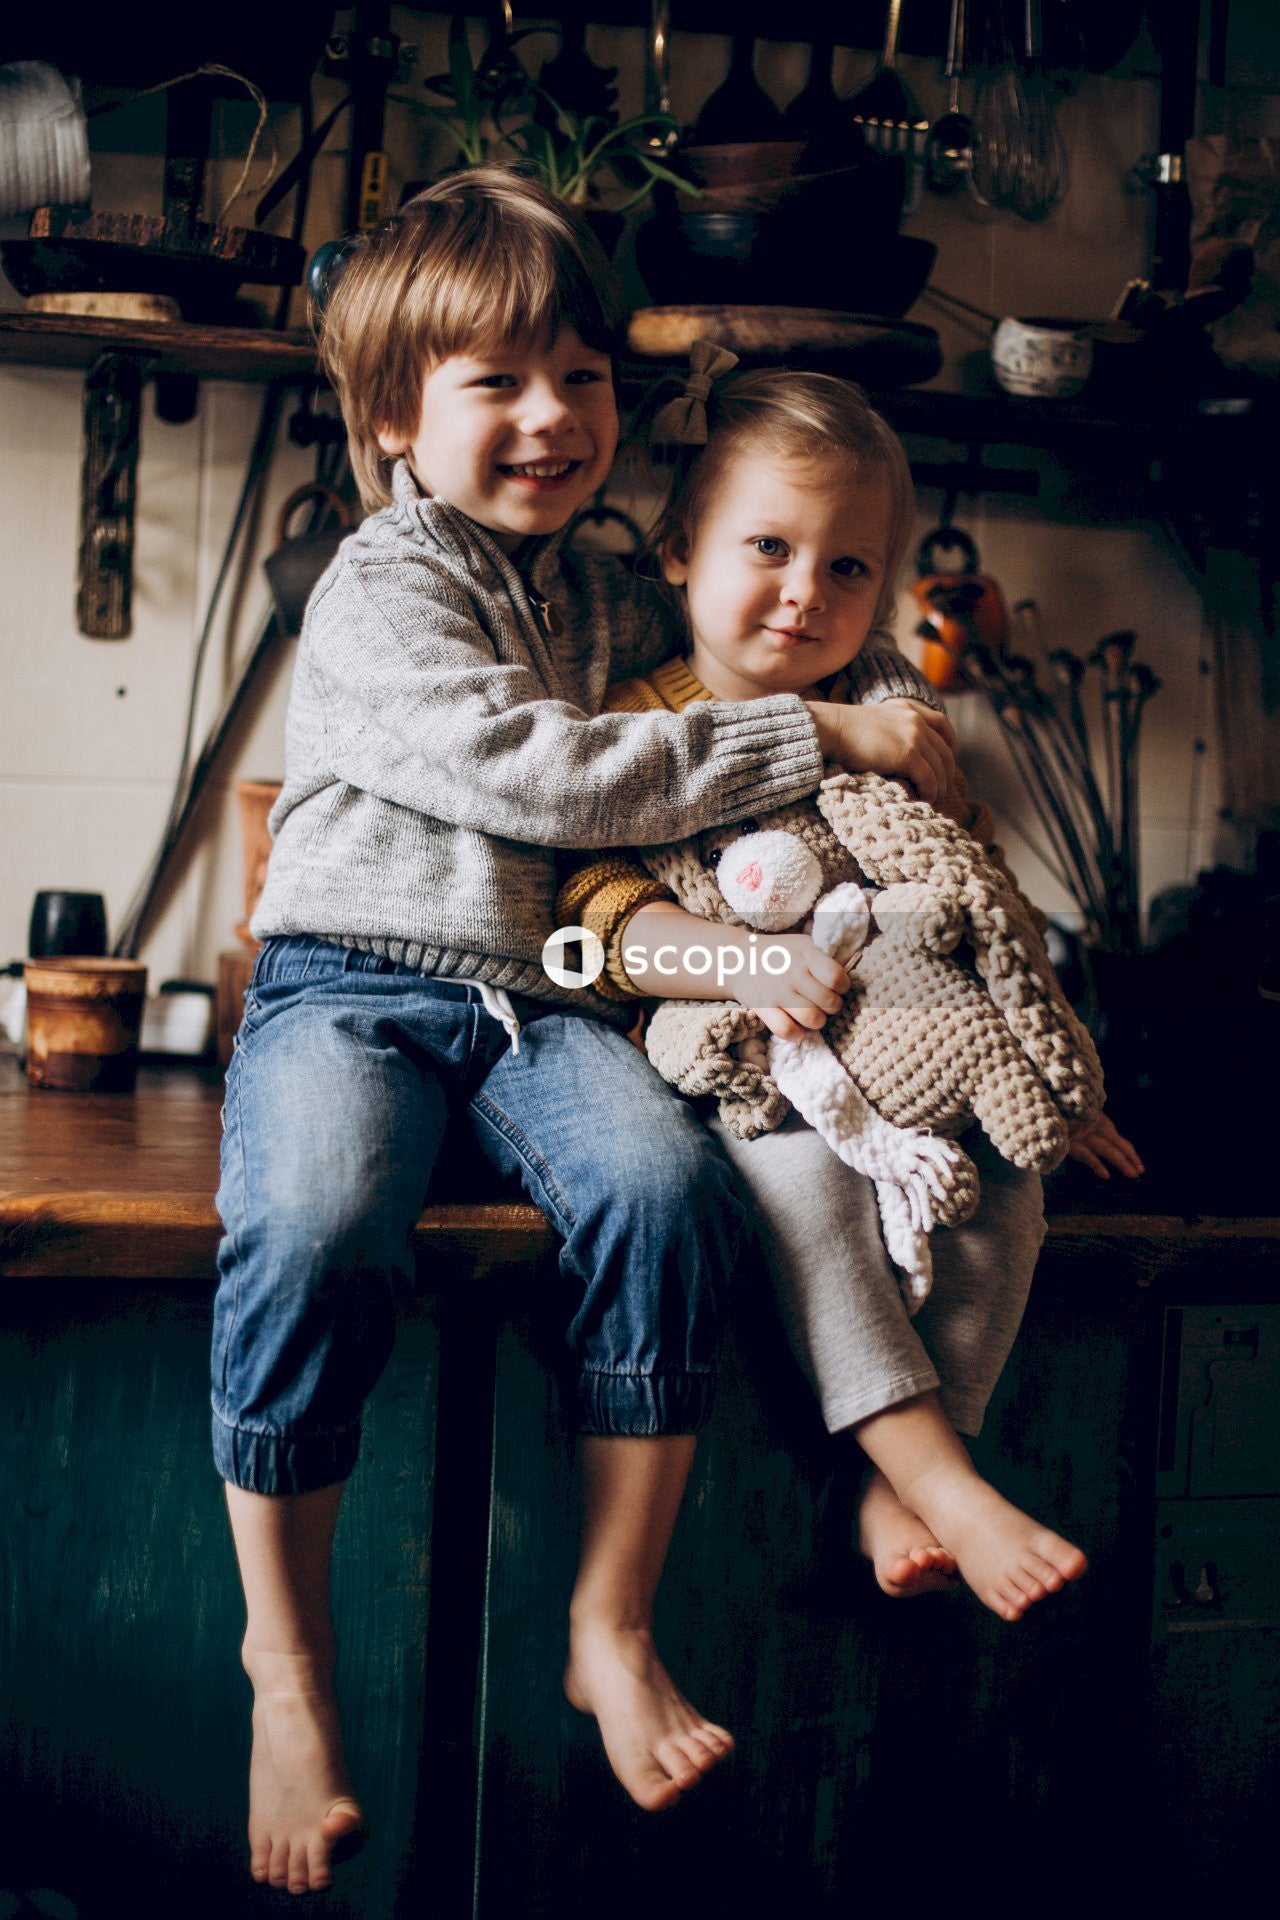 Little blond boy sitting on table hugging baby girl